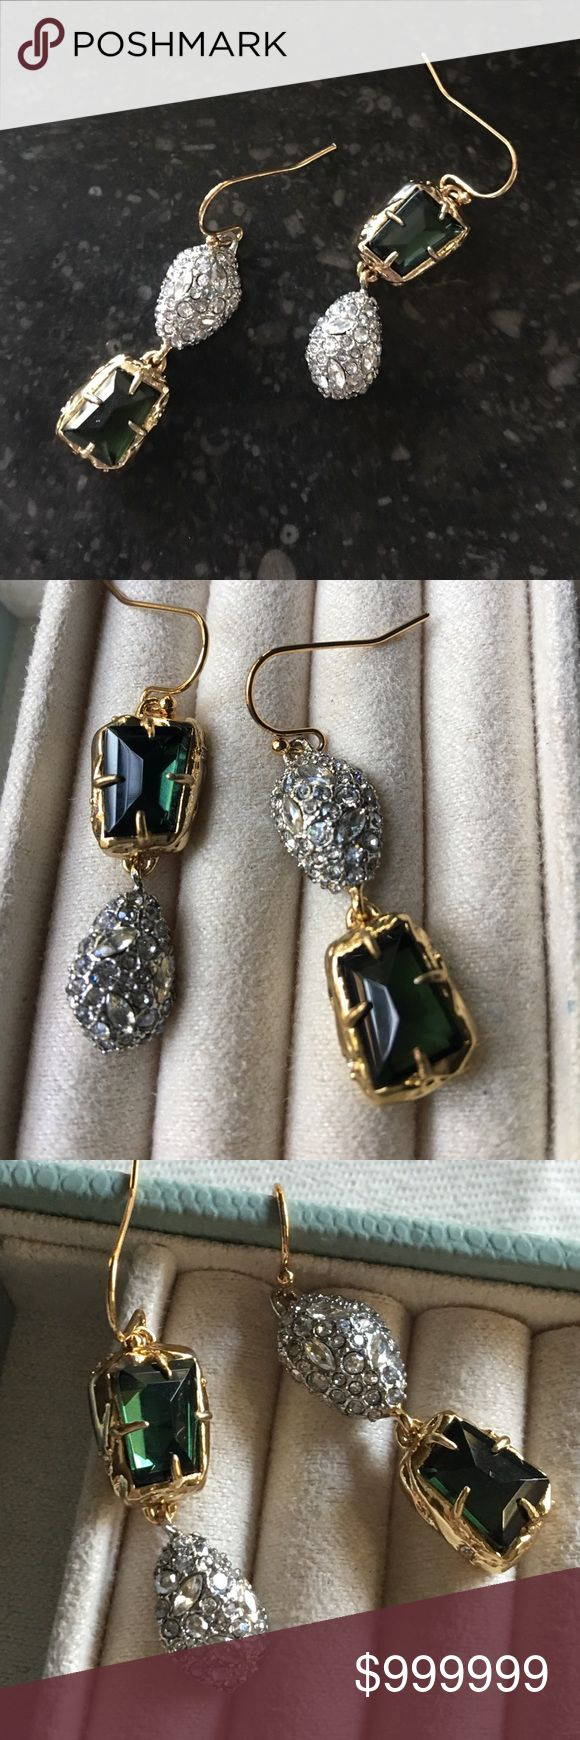 🔥SALE Alexis Bittar Green Amethyst Earrings Alexis Bittar Mismatched Green Amethyst & Crystal Earrings • New without tags • No flaws • Pave Swarovski Crystals in Gold. Mismatched design makes a beautiful statement. Check out my other Alexis Bittar items. Bundle & Save! Alexis Bittar Jewelry Earrings